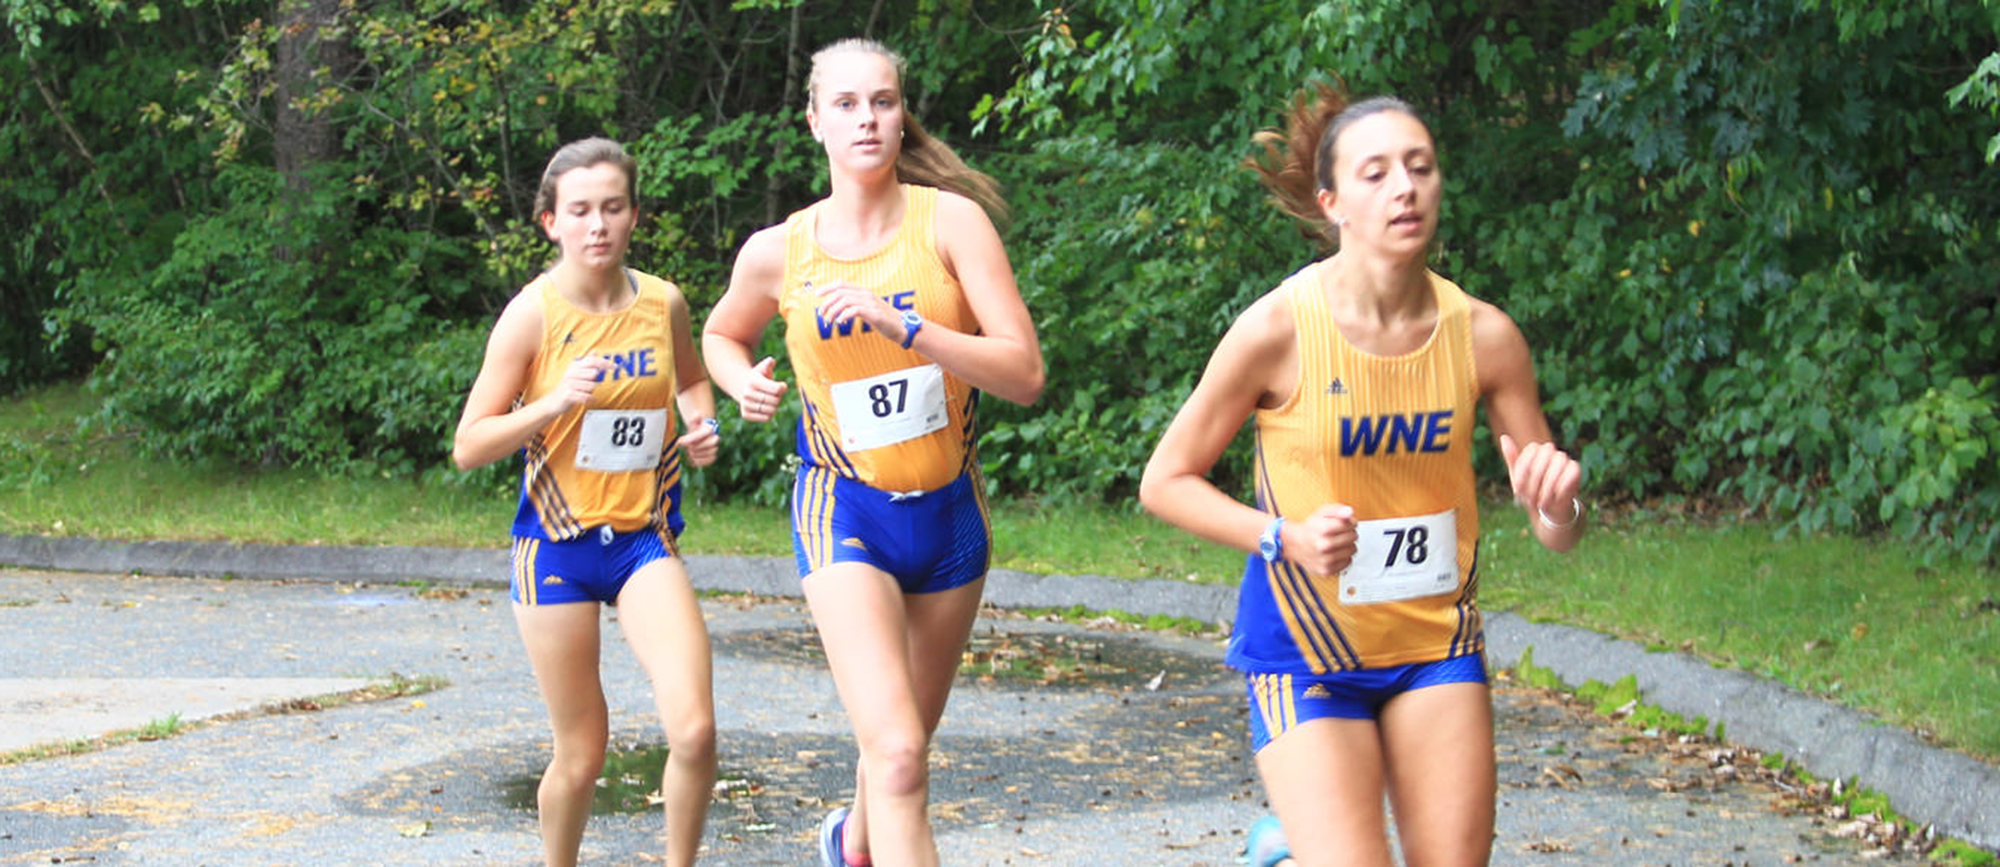 Townsend Leads Golden Bears at Western New England Invitational